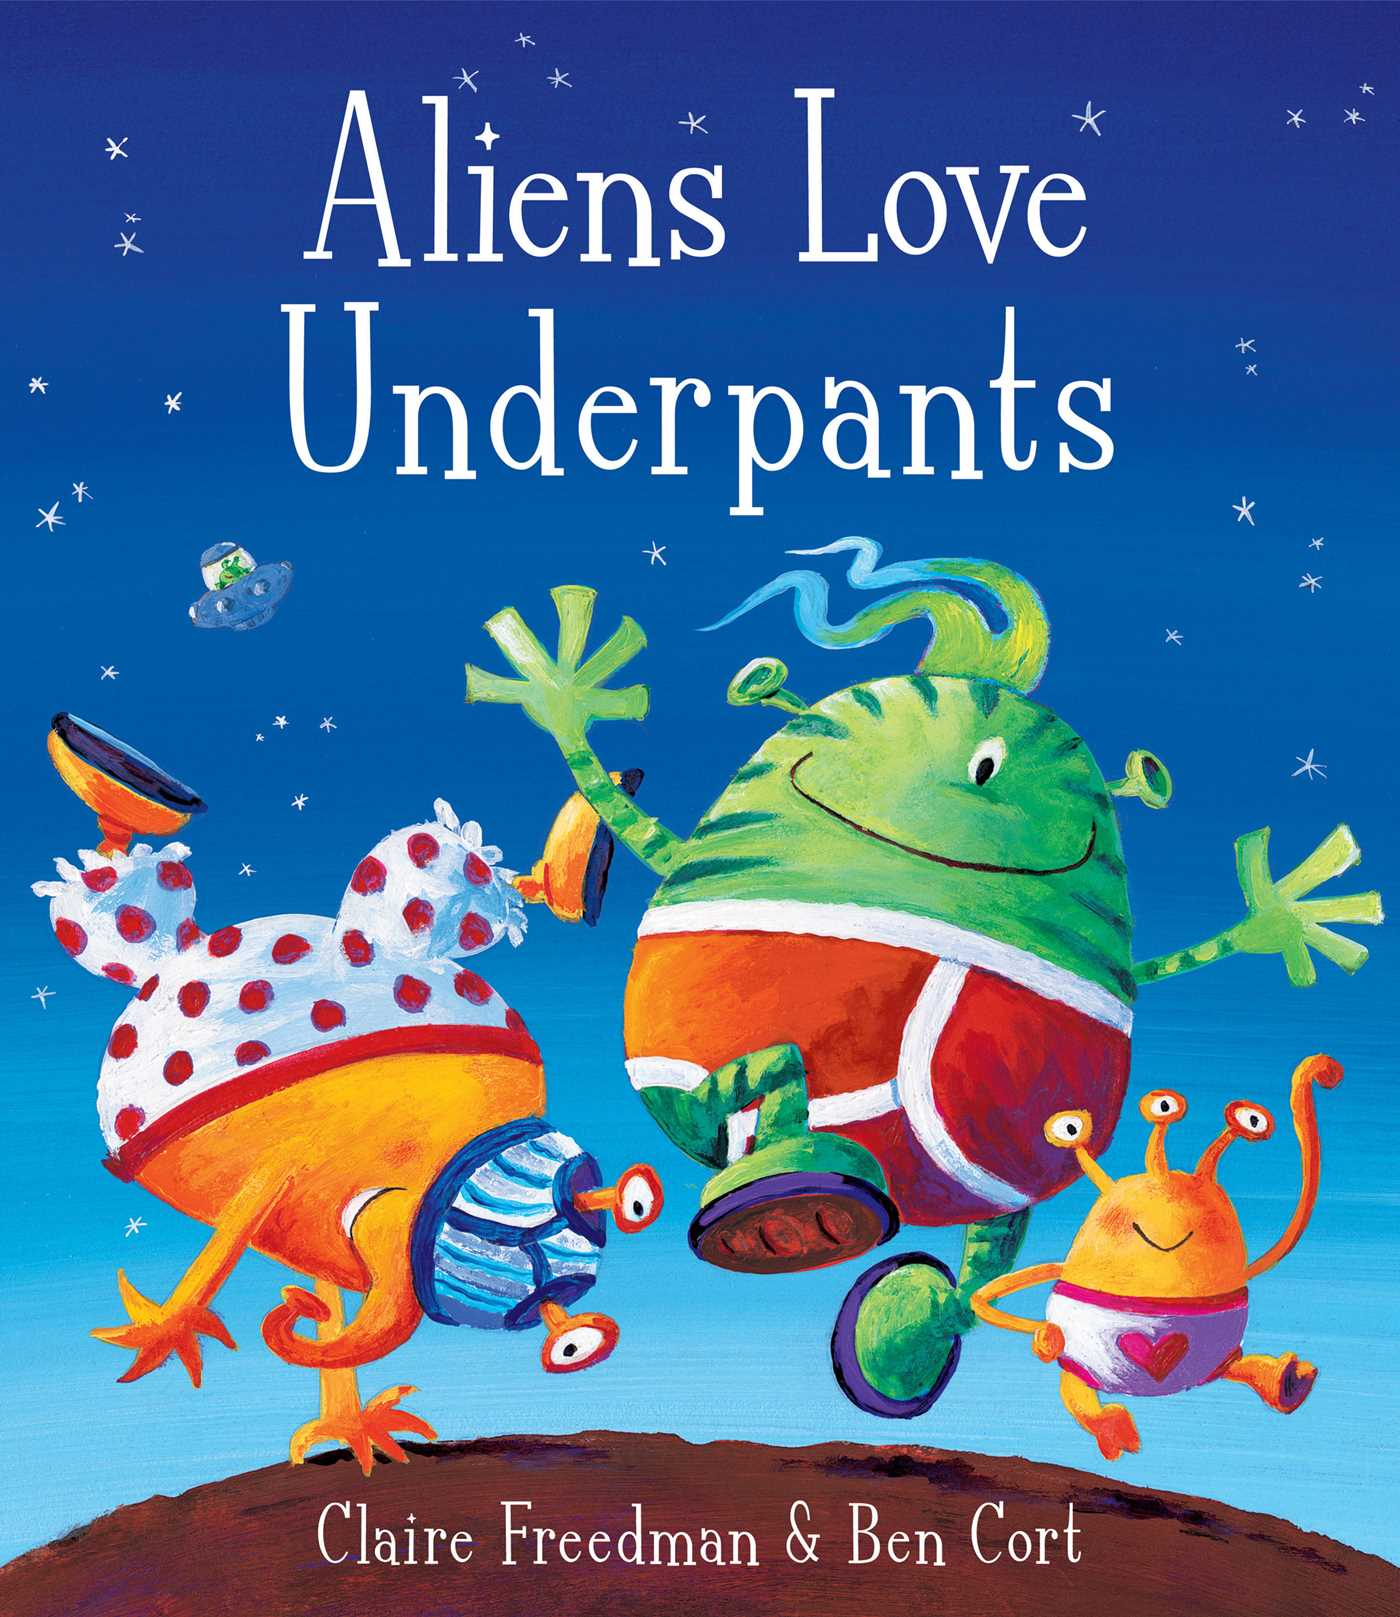 Aliens-love-underpants-9781416917052_hr